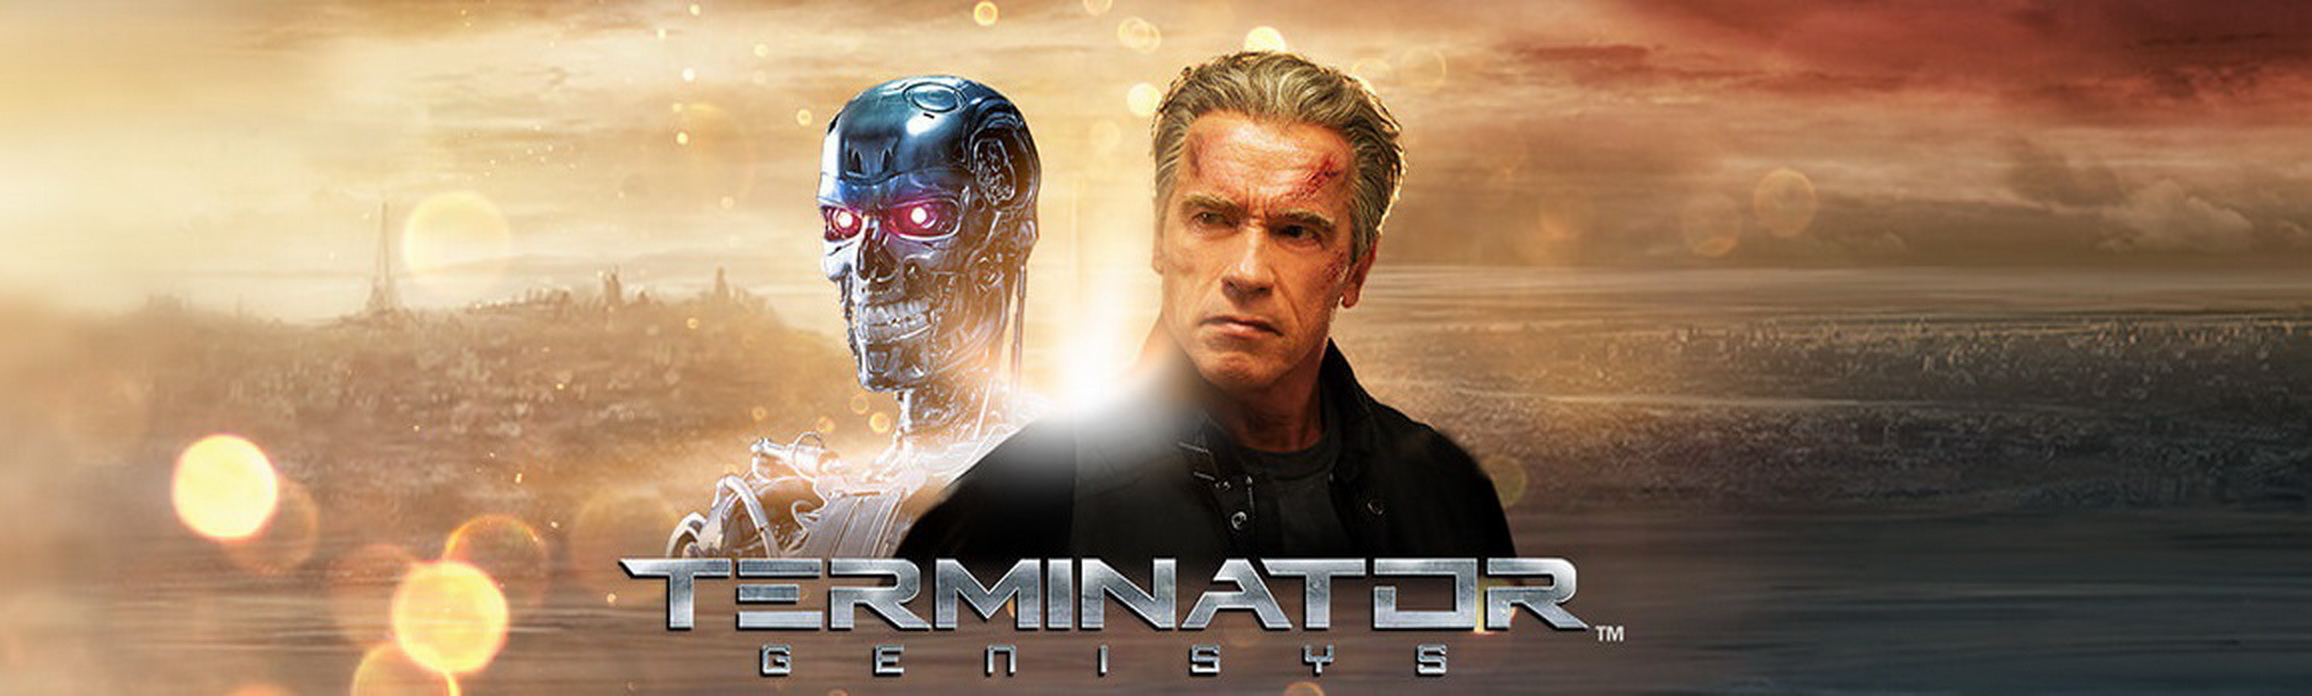 The Terminator Genisys Online Slot Demo Game by Playtech